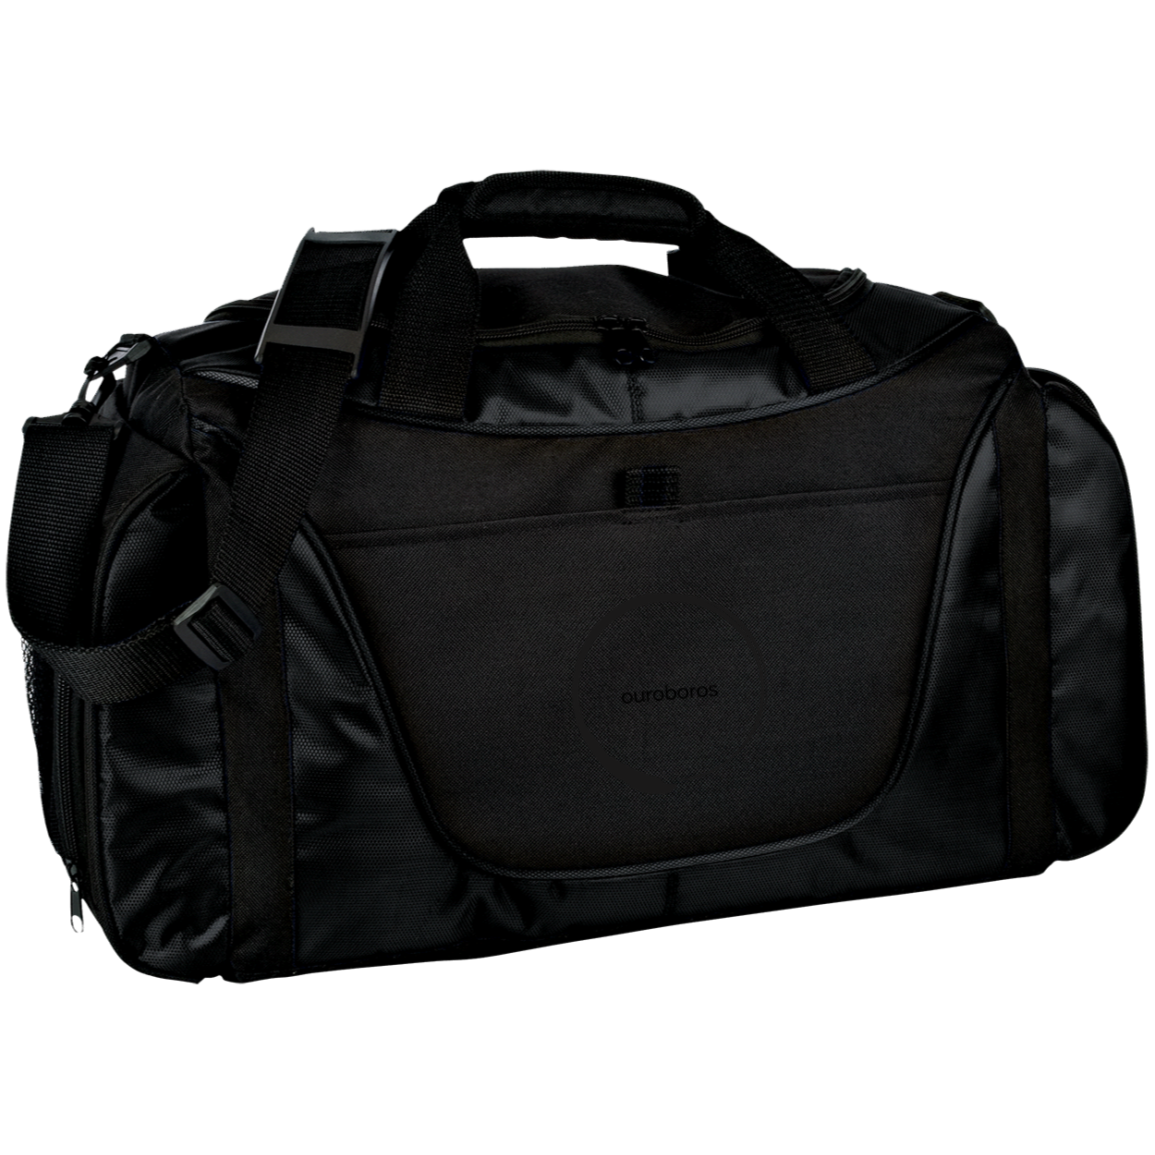 Ouroboros Medium Color Block Gear Bag